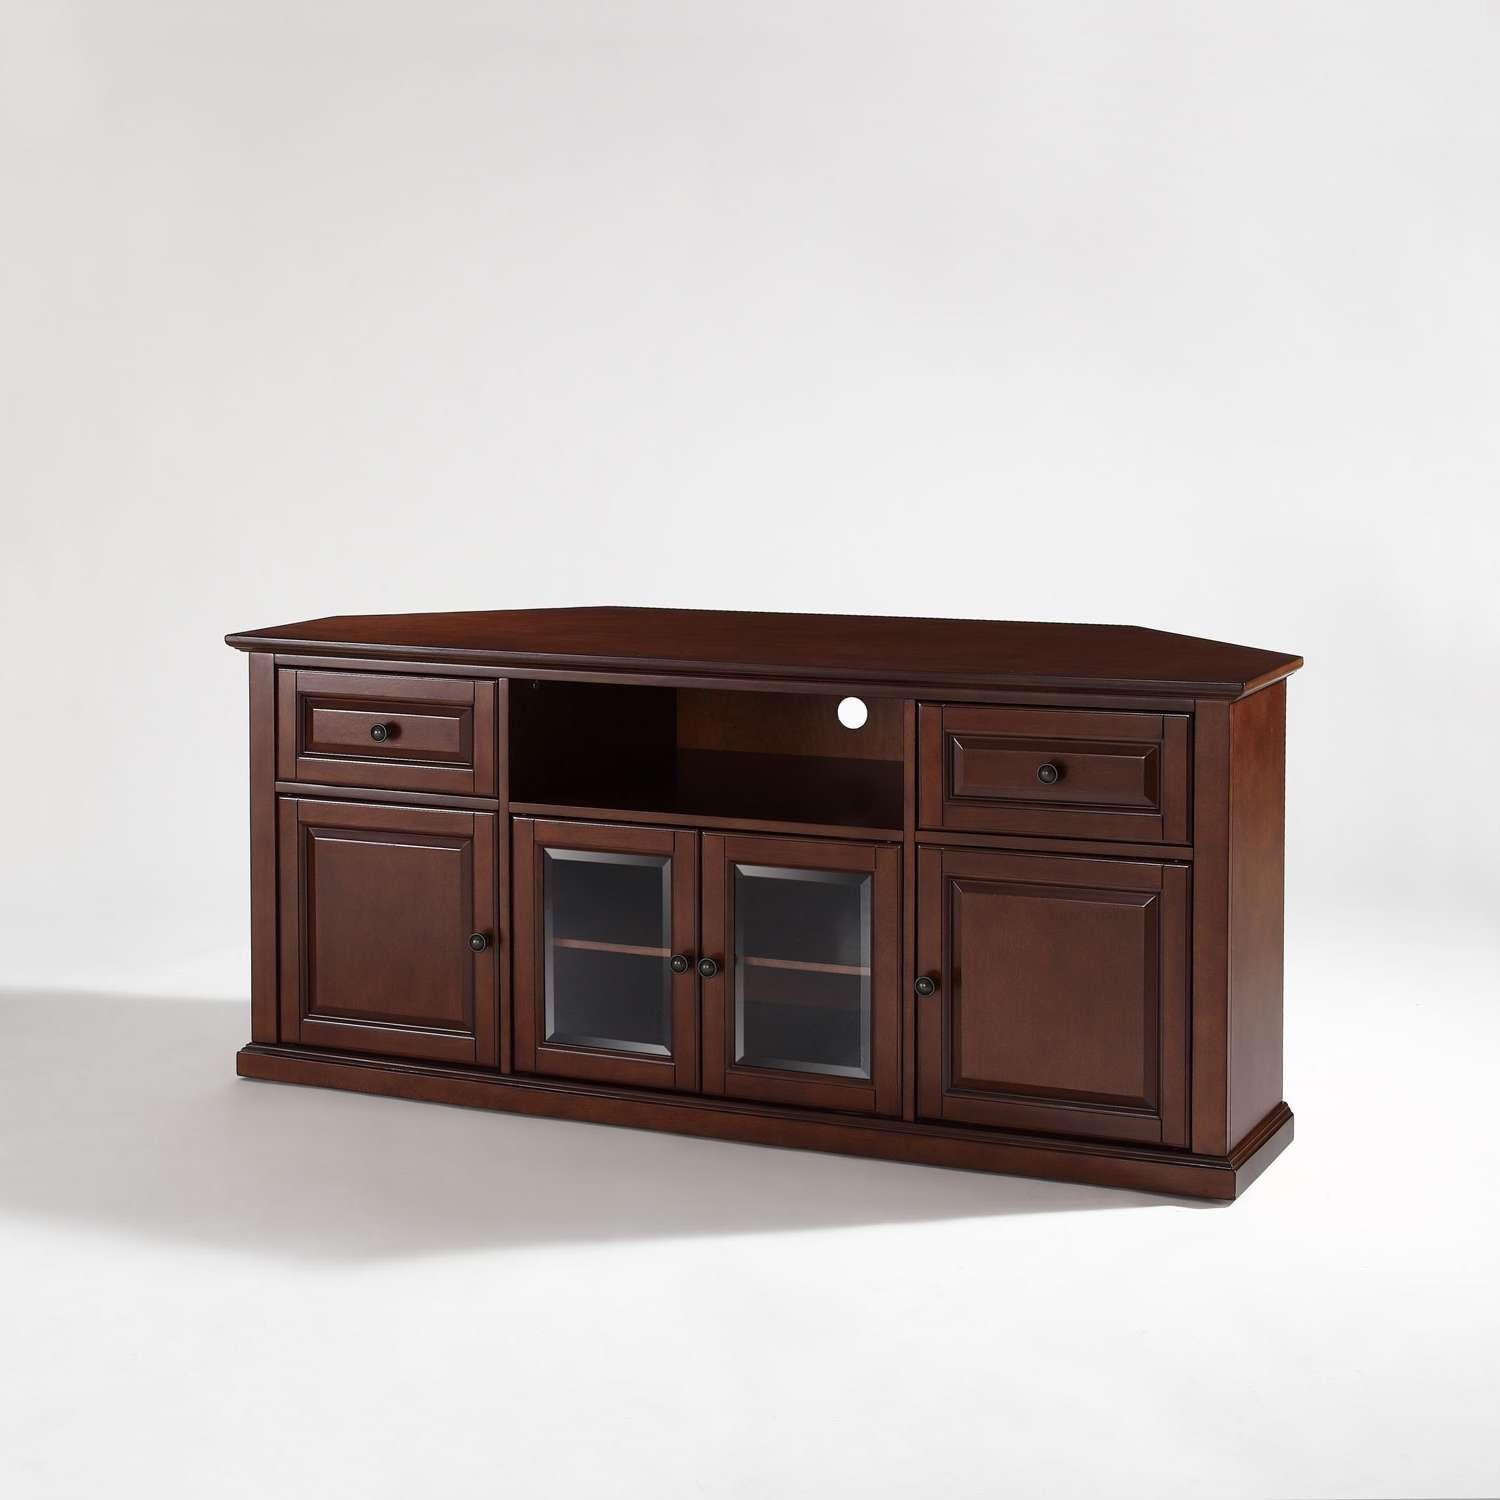 60 Inch Corner Tv Stand In Vintage Mahogany Crosley Furniture In Tv Stands 40 Inches Wide (View 1 of 15)